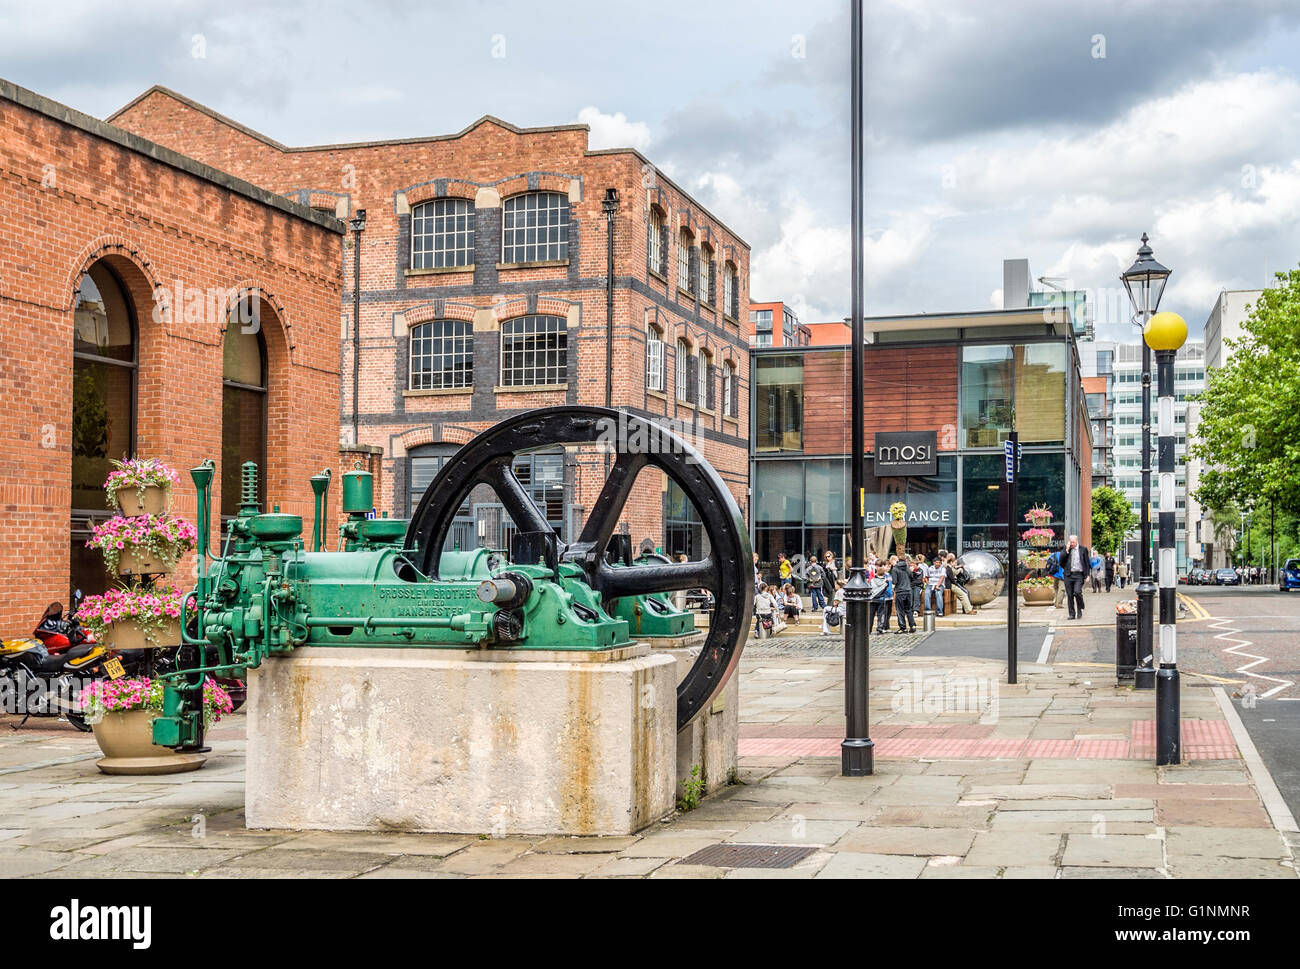 The Museum of Science and Industry in Manchester (MOSI), in Manchester, England, UK - Stock Image